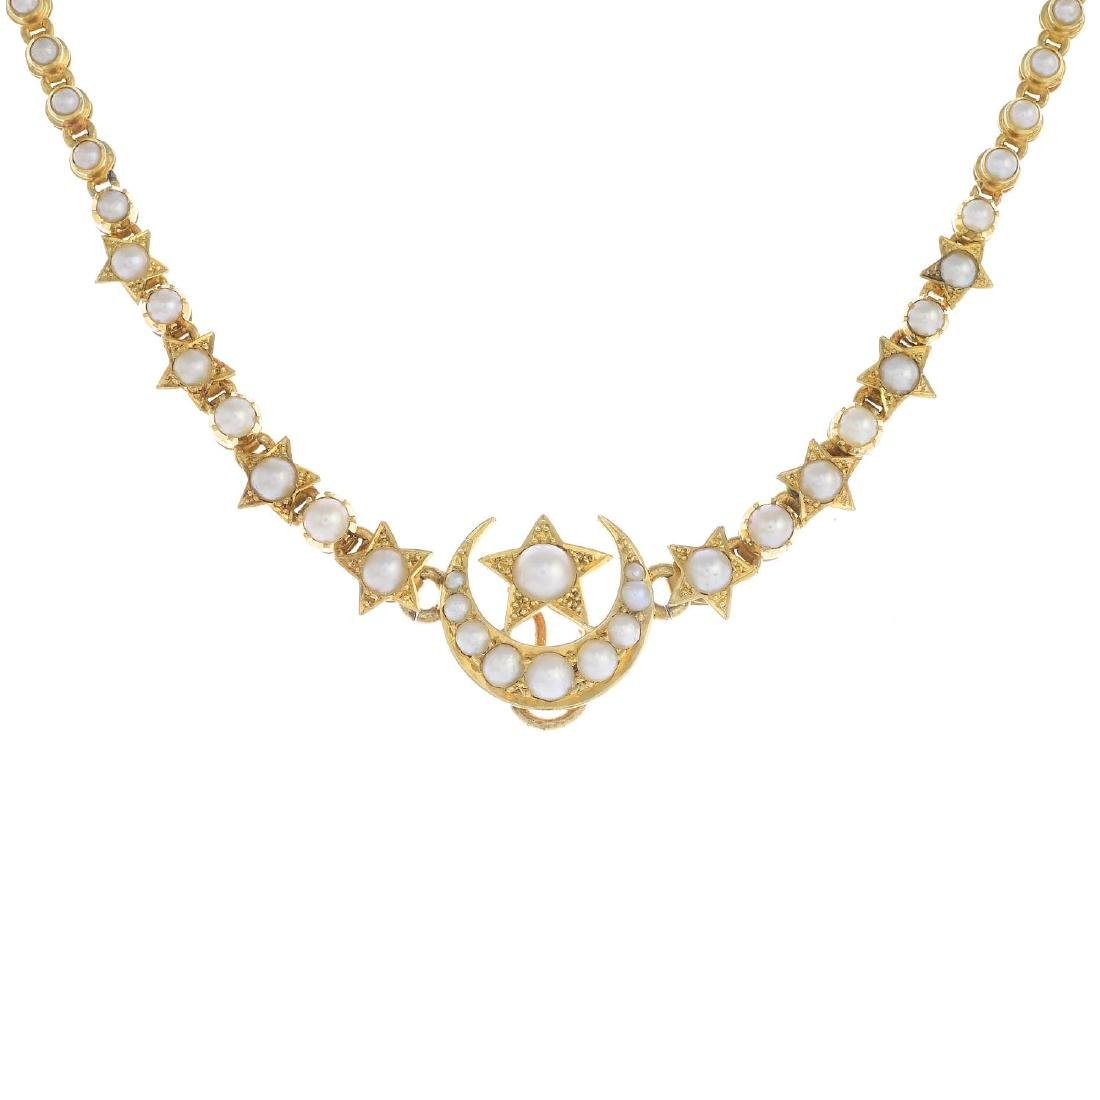 An early 20th century 18ct gold split pearl necklace.